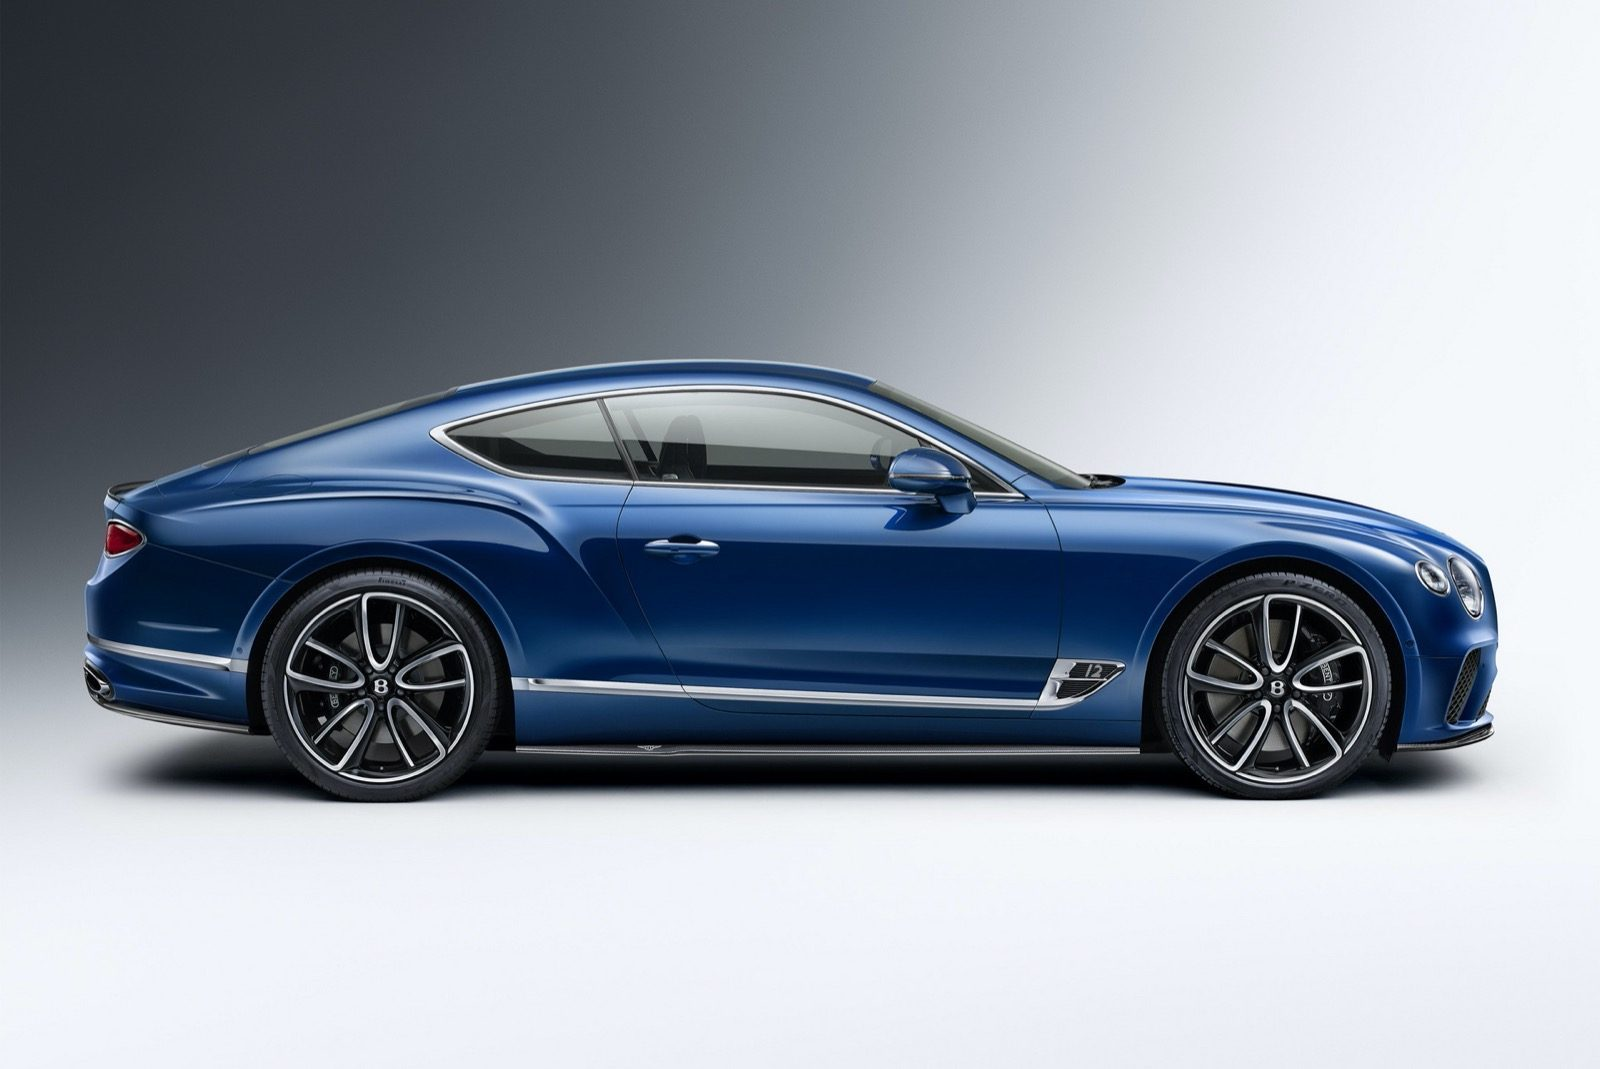 Continental GT Styling Specification